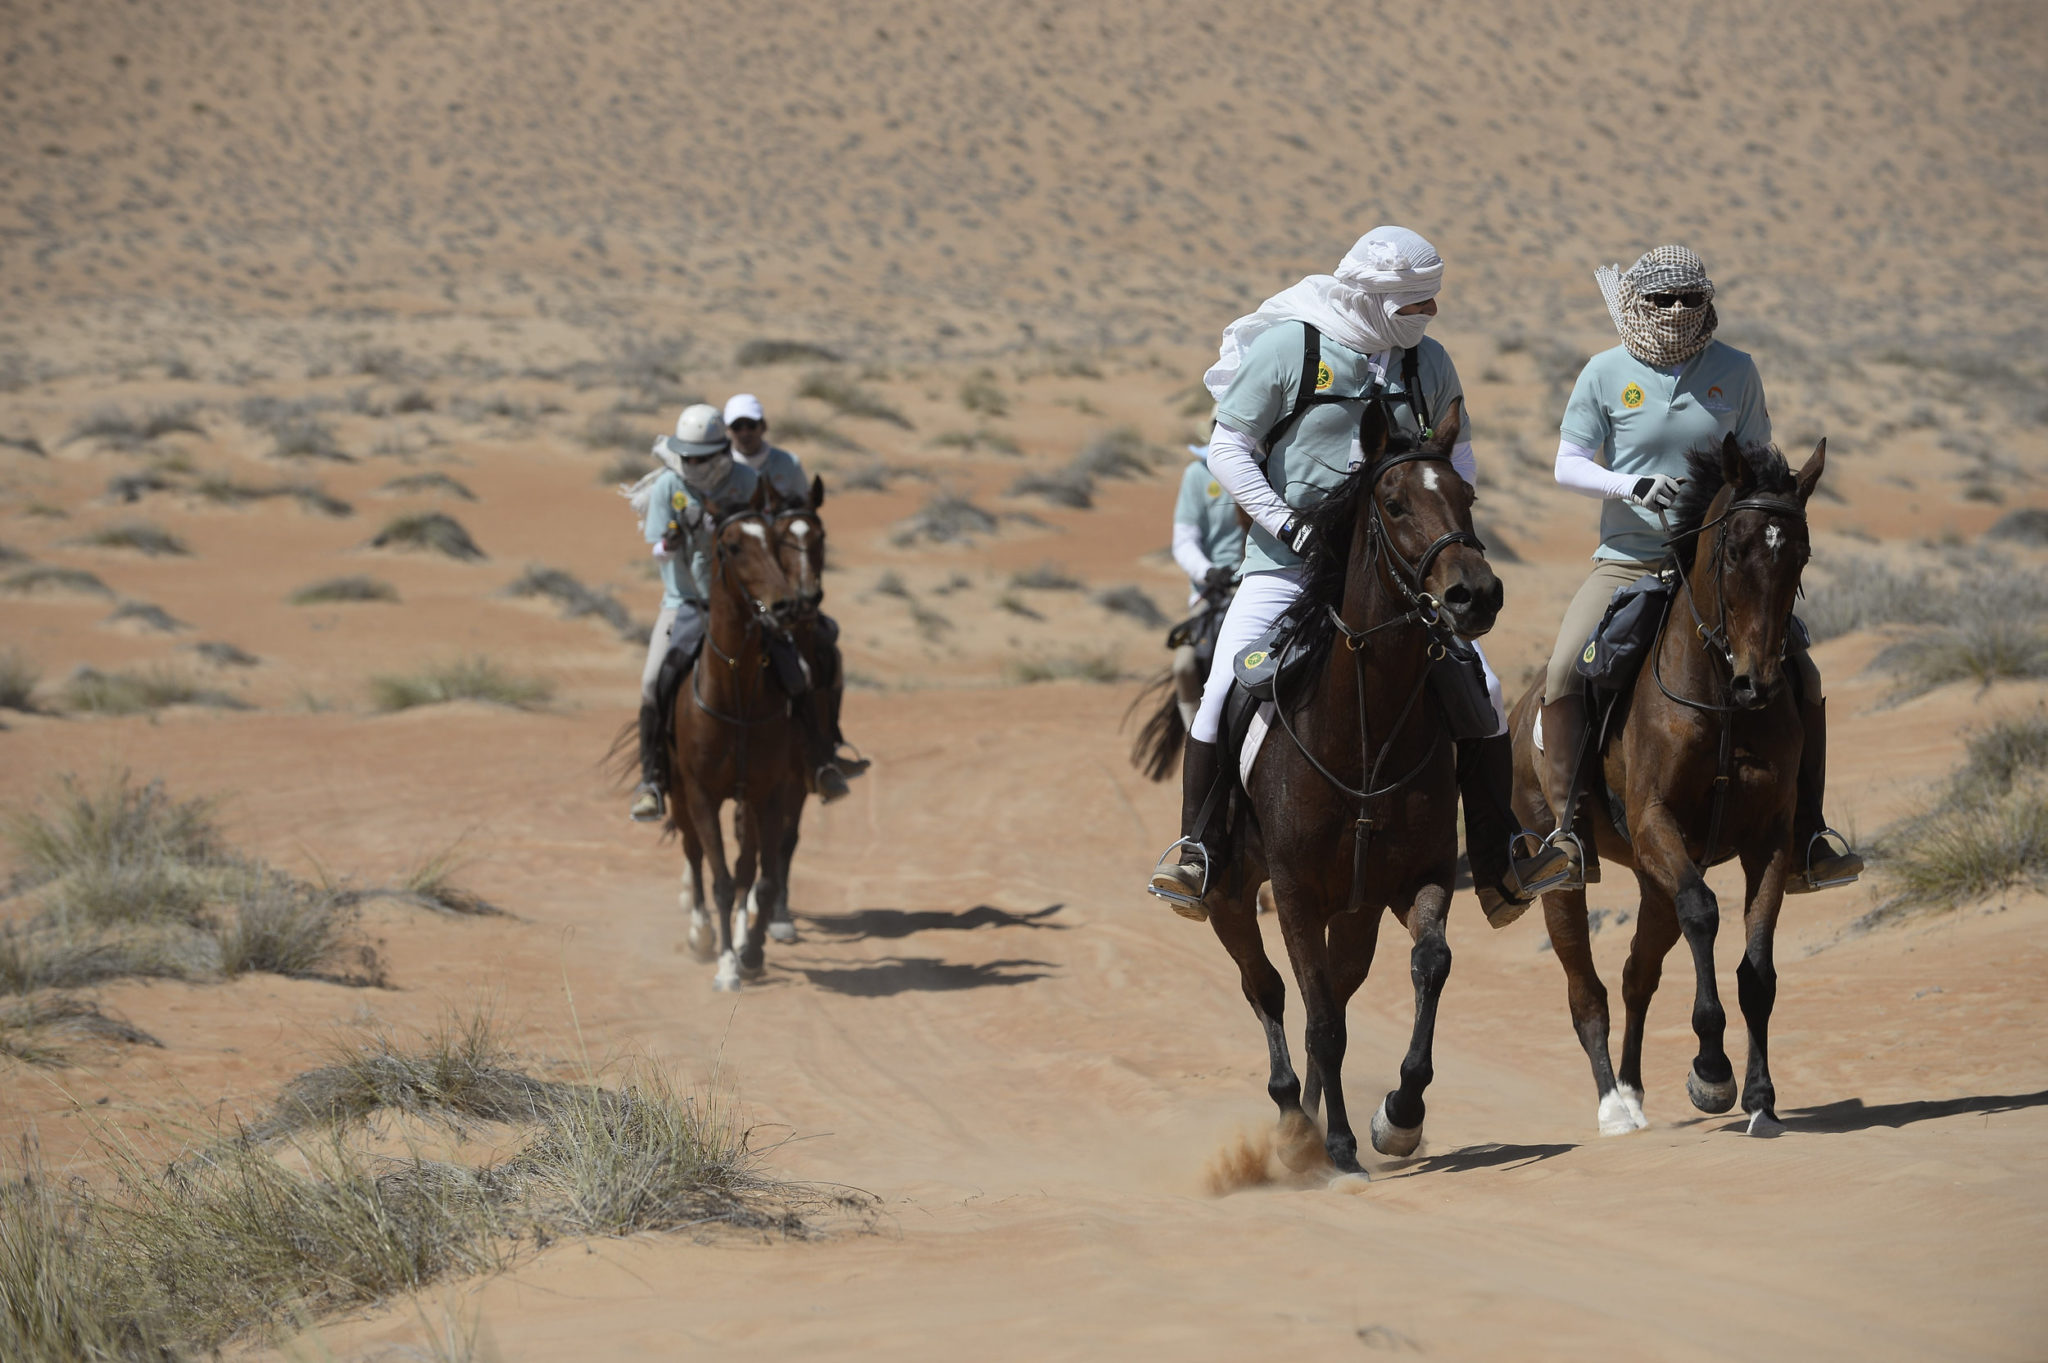 Endurance World Gallops of Morocco. Never easy.